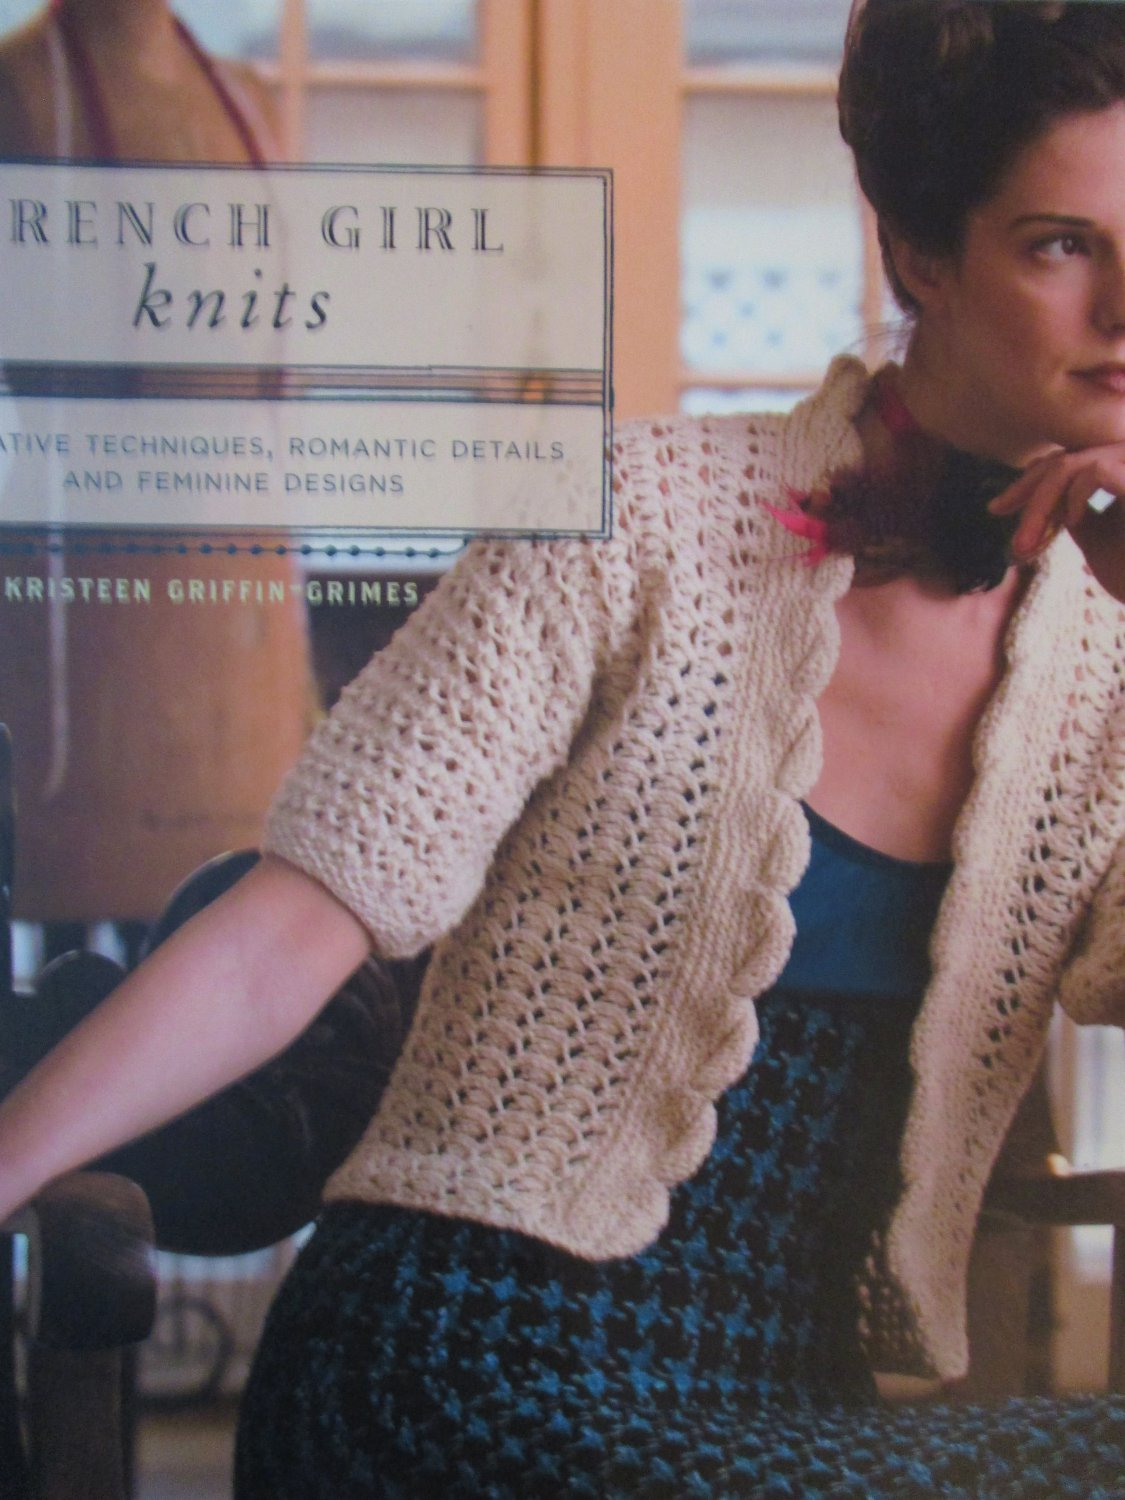 French Girl Knits  Kristeen Griffin-Grimes